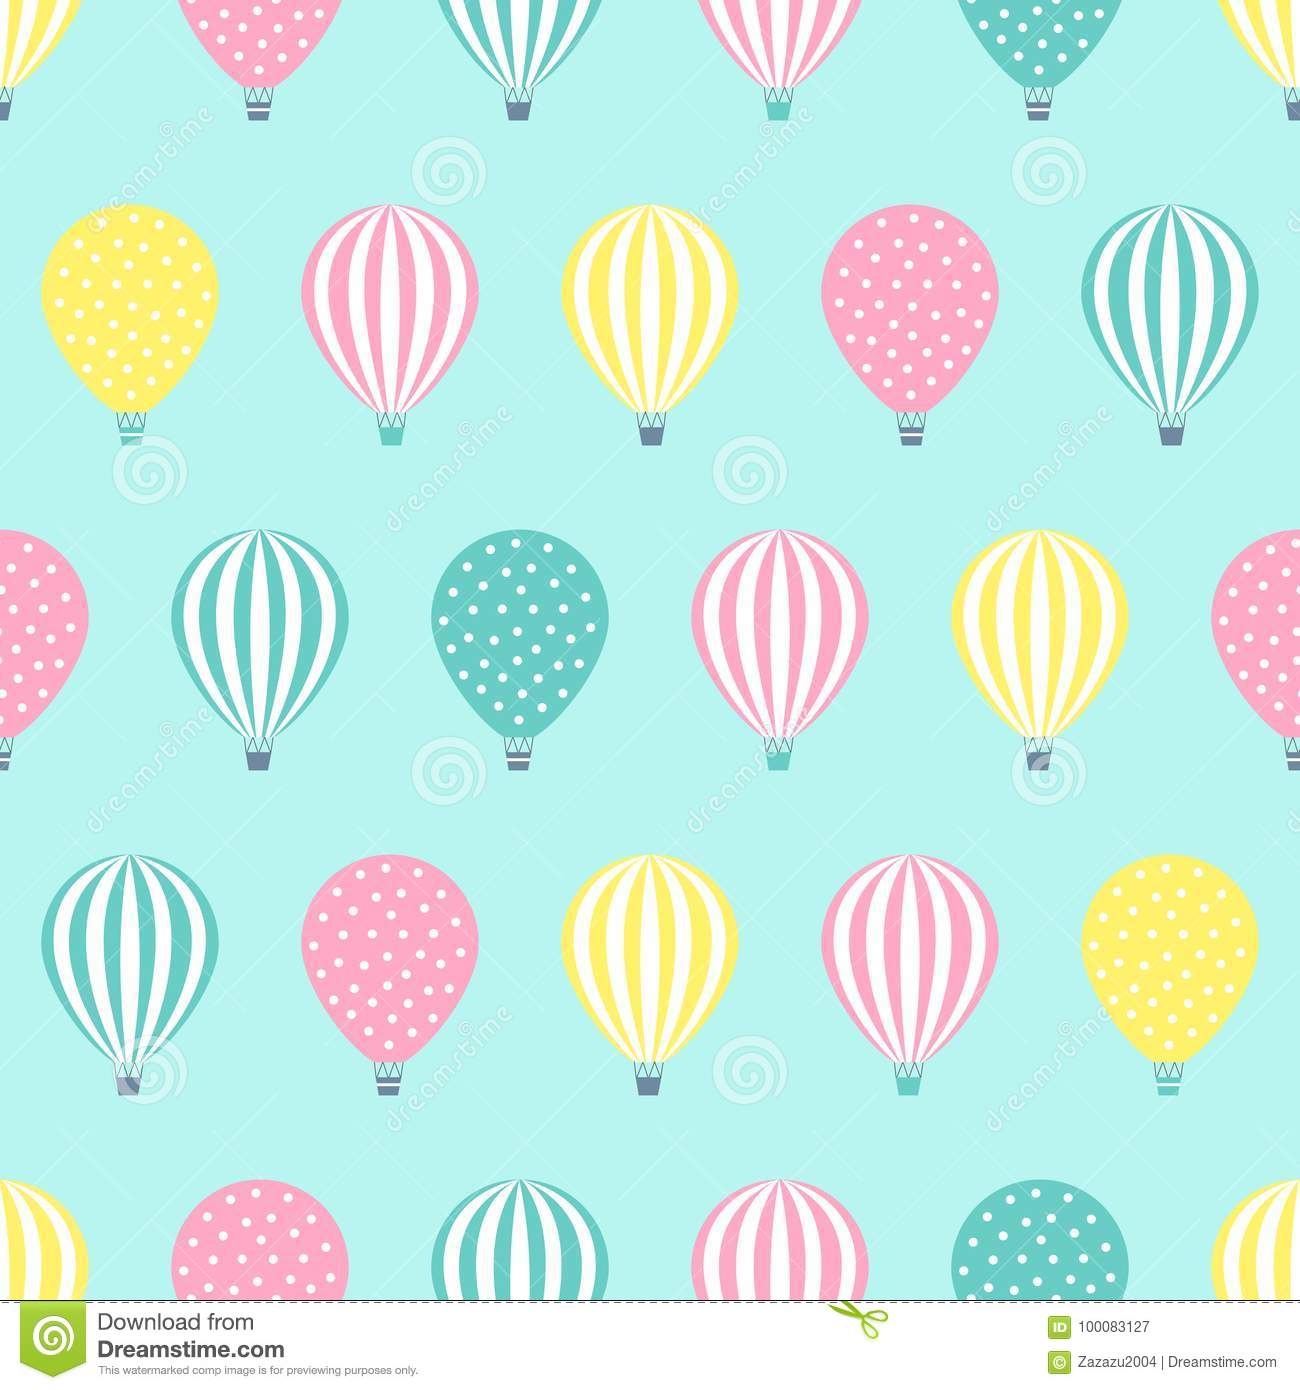 Hot Air Balloon Seamless Pattern Stock Vector Illustration Of Colorful Wallpaper 100083127